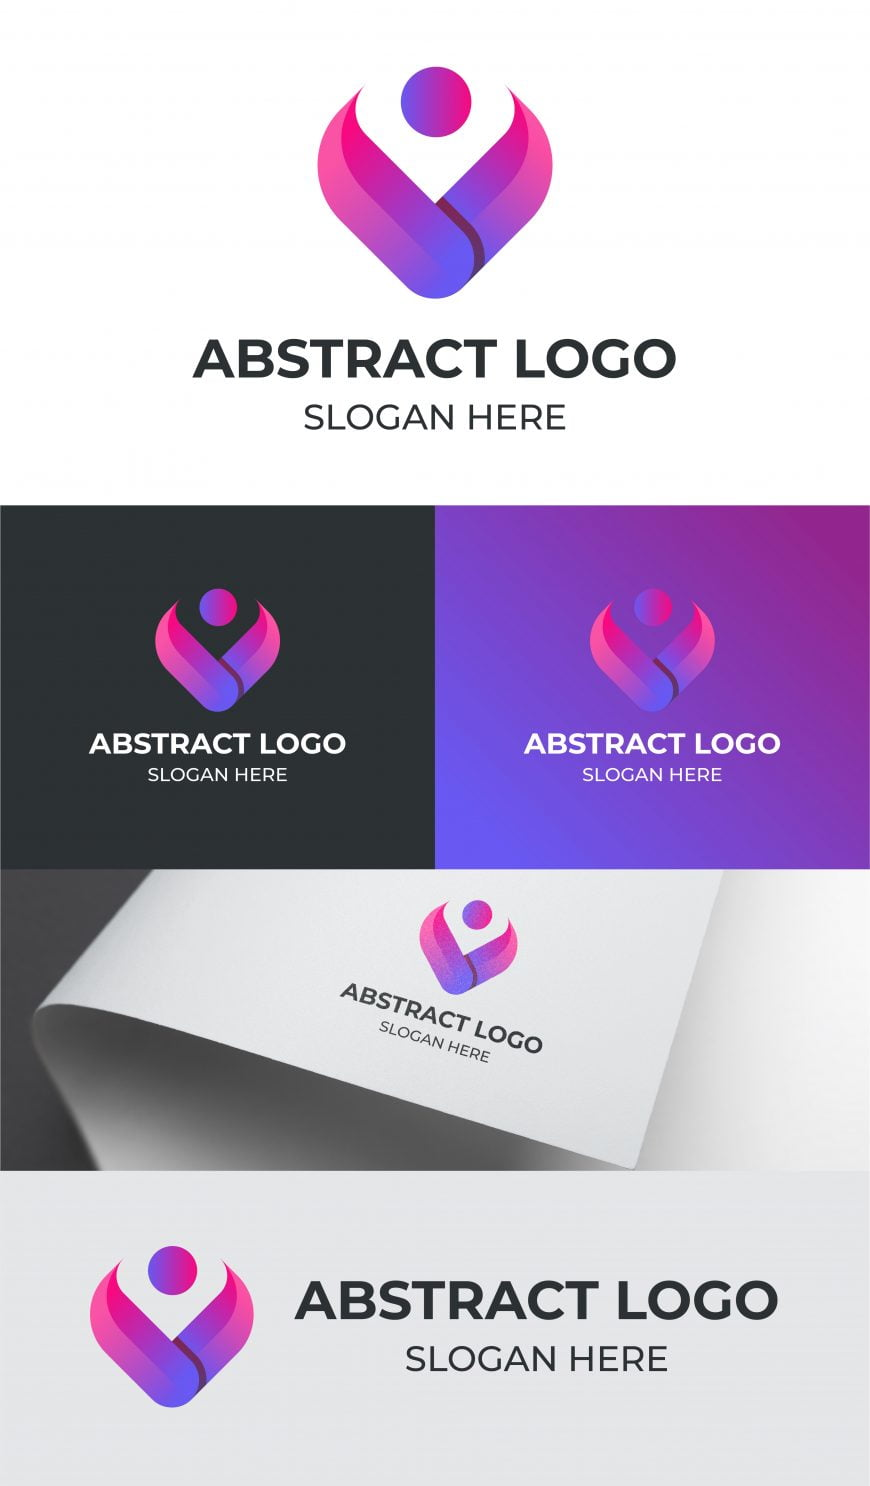 free-abstract-logo-template-scaled